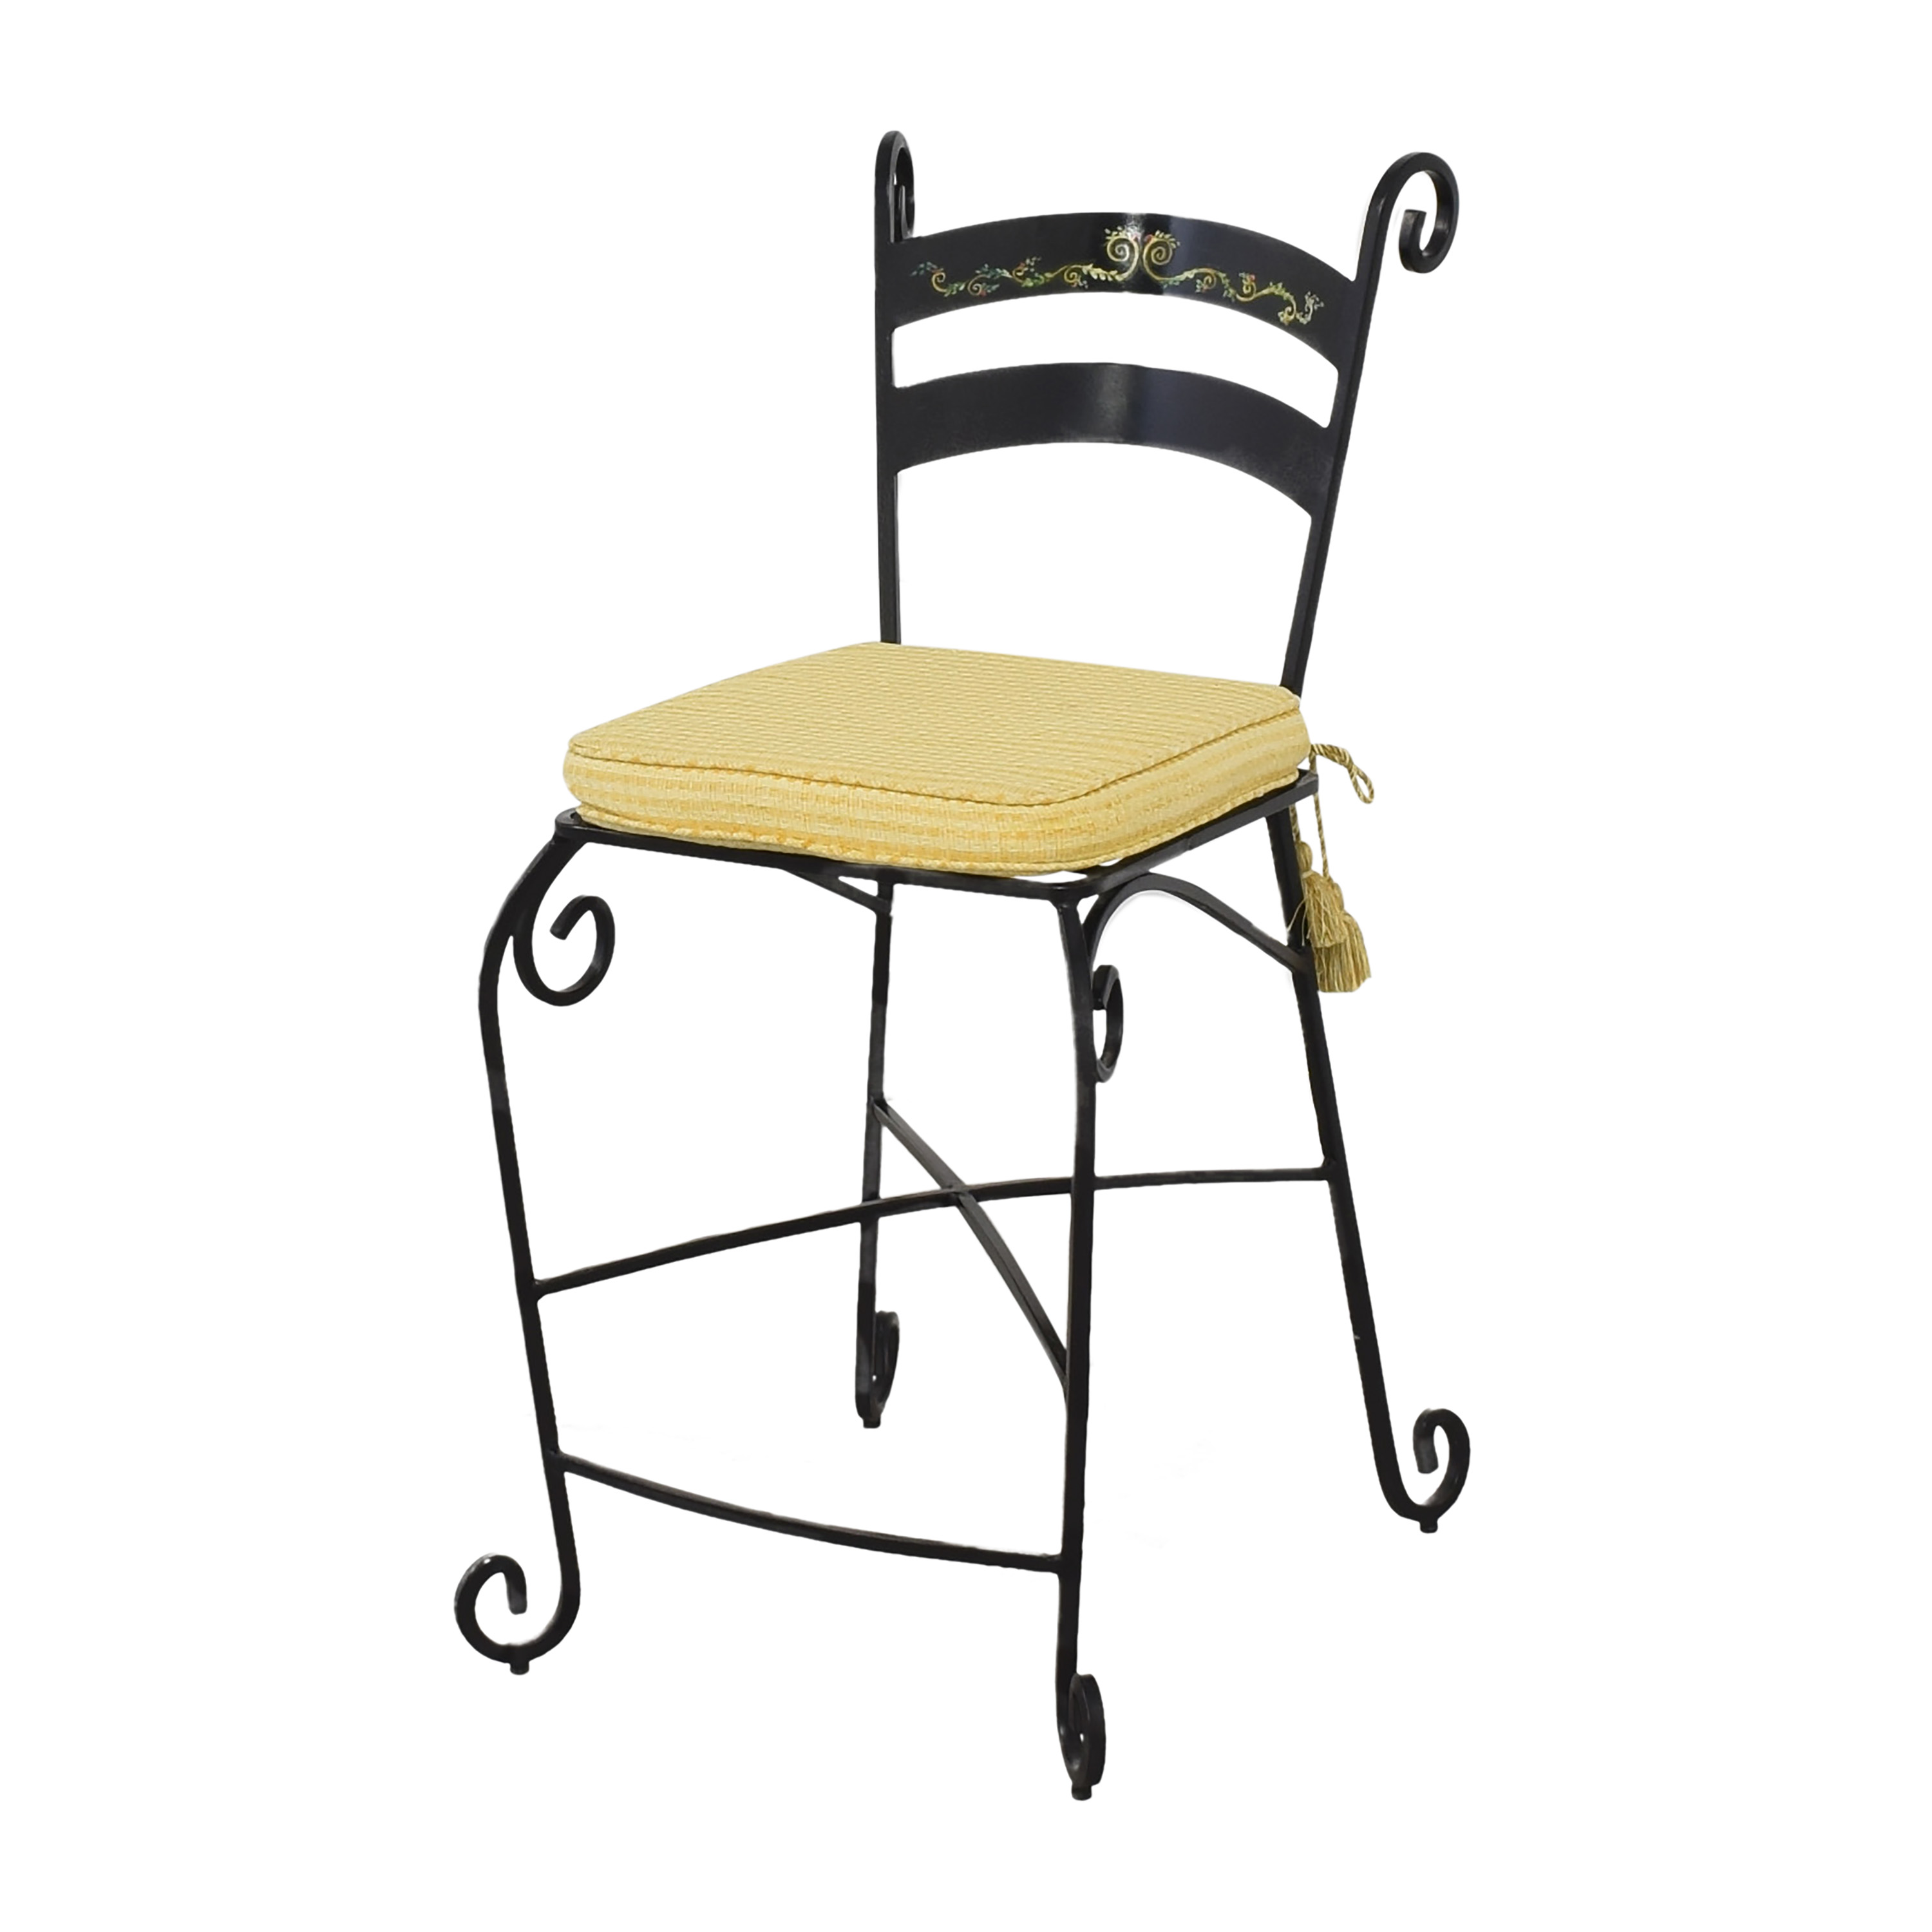 Wrought Frame Bar Stools used